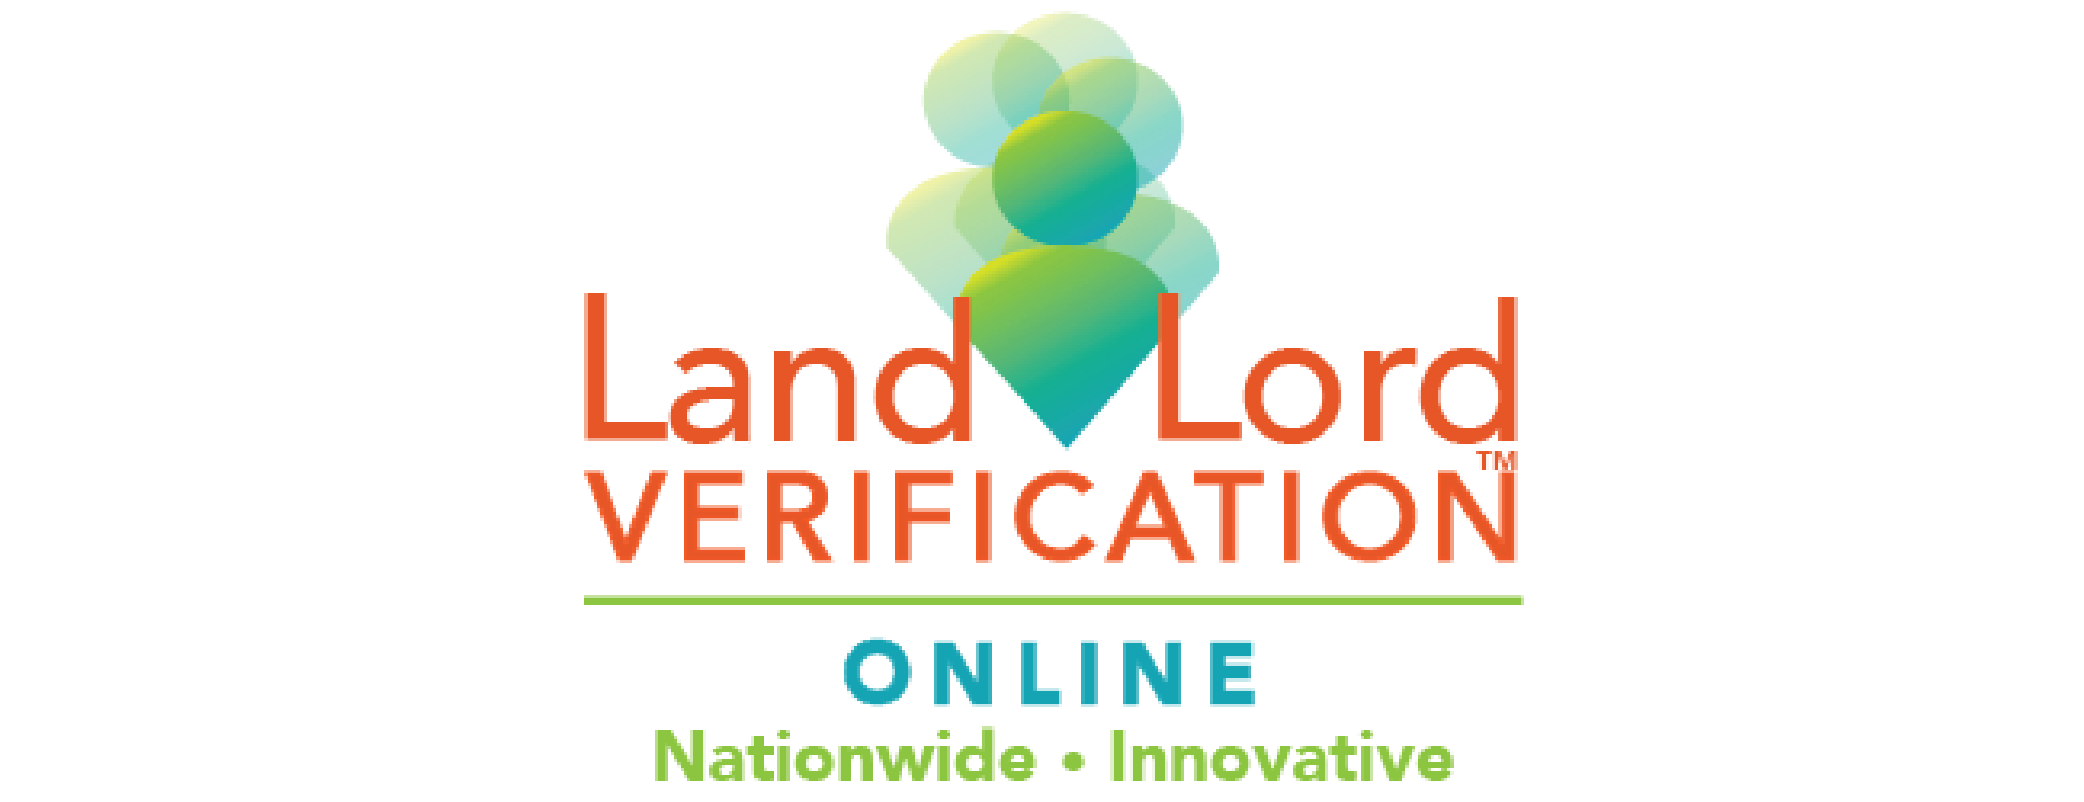 LandLord Verification